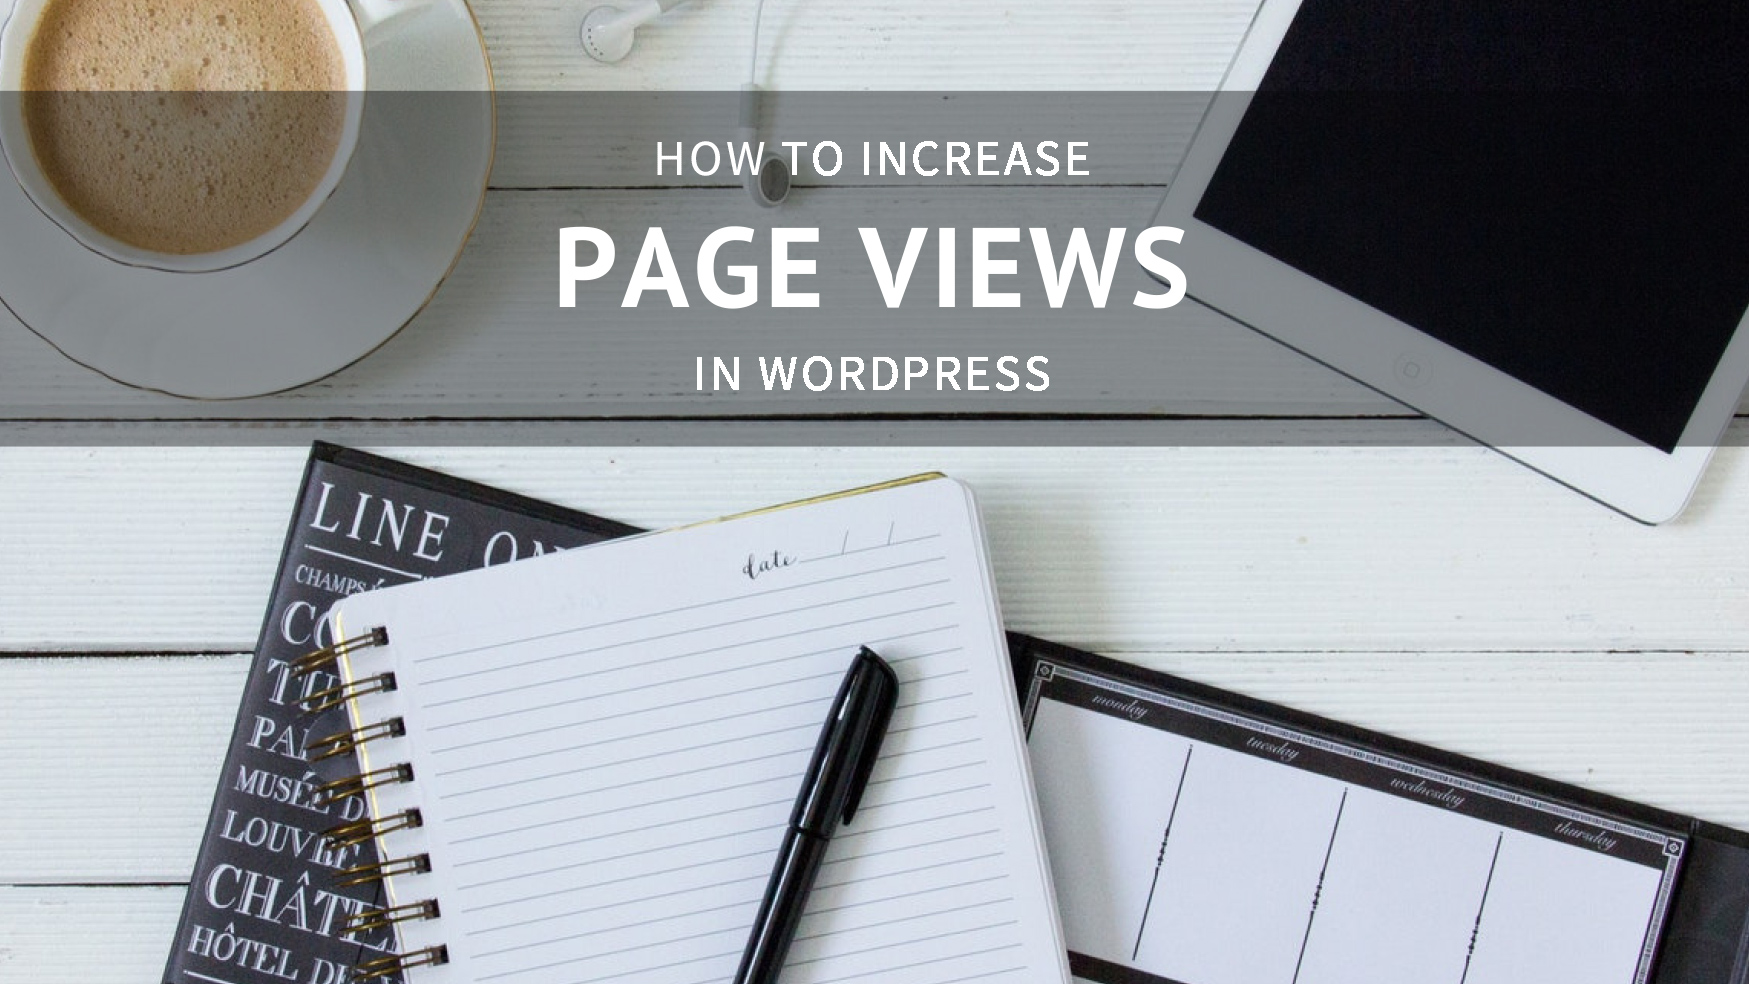 How to Get More PageViews in WordPress